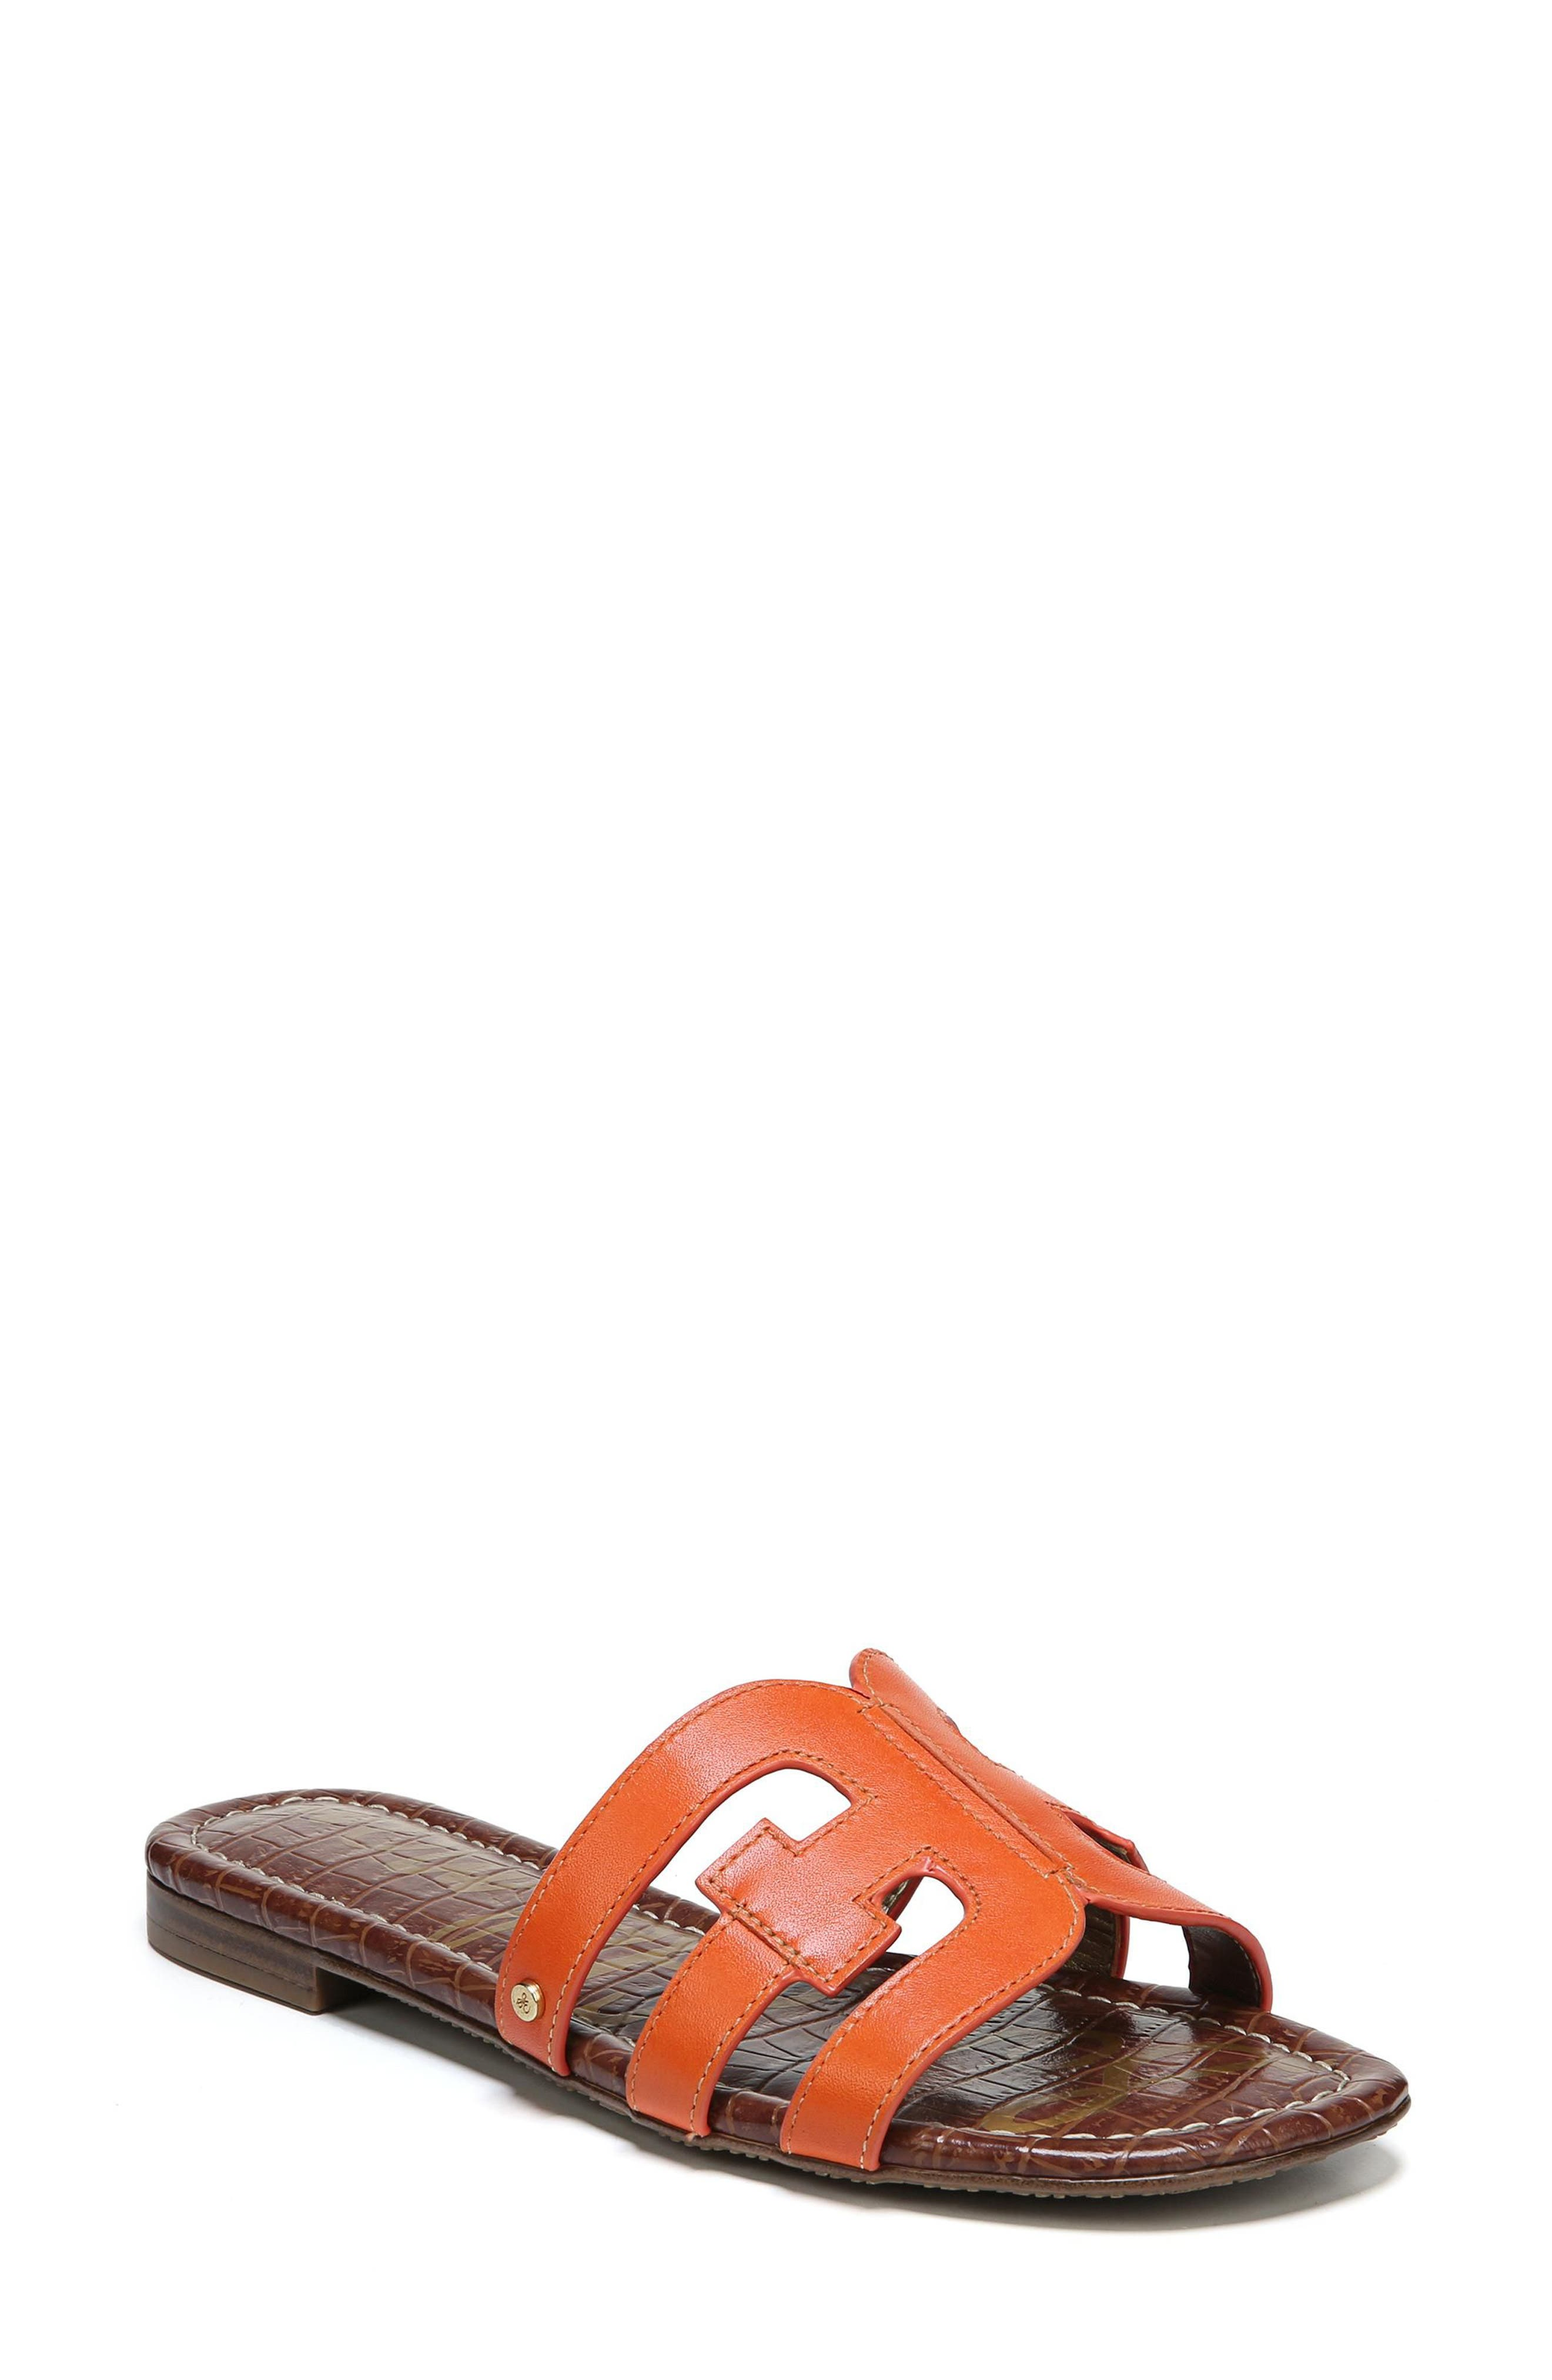 Sandals for Women On Sale, Barley, Leather, 2017, 3.5 4.5 5.5 7.5 Volver